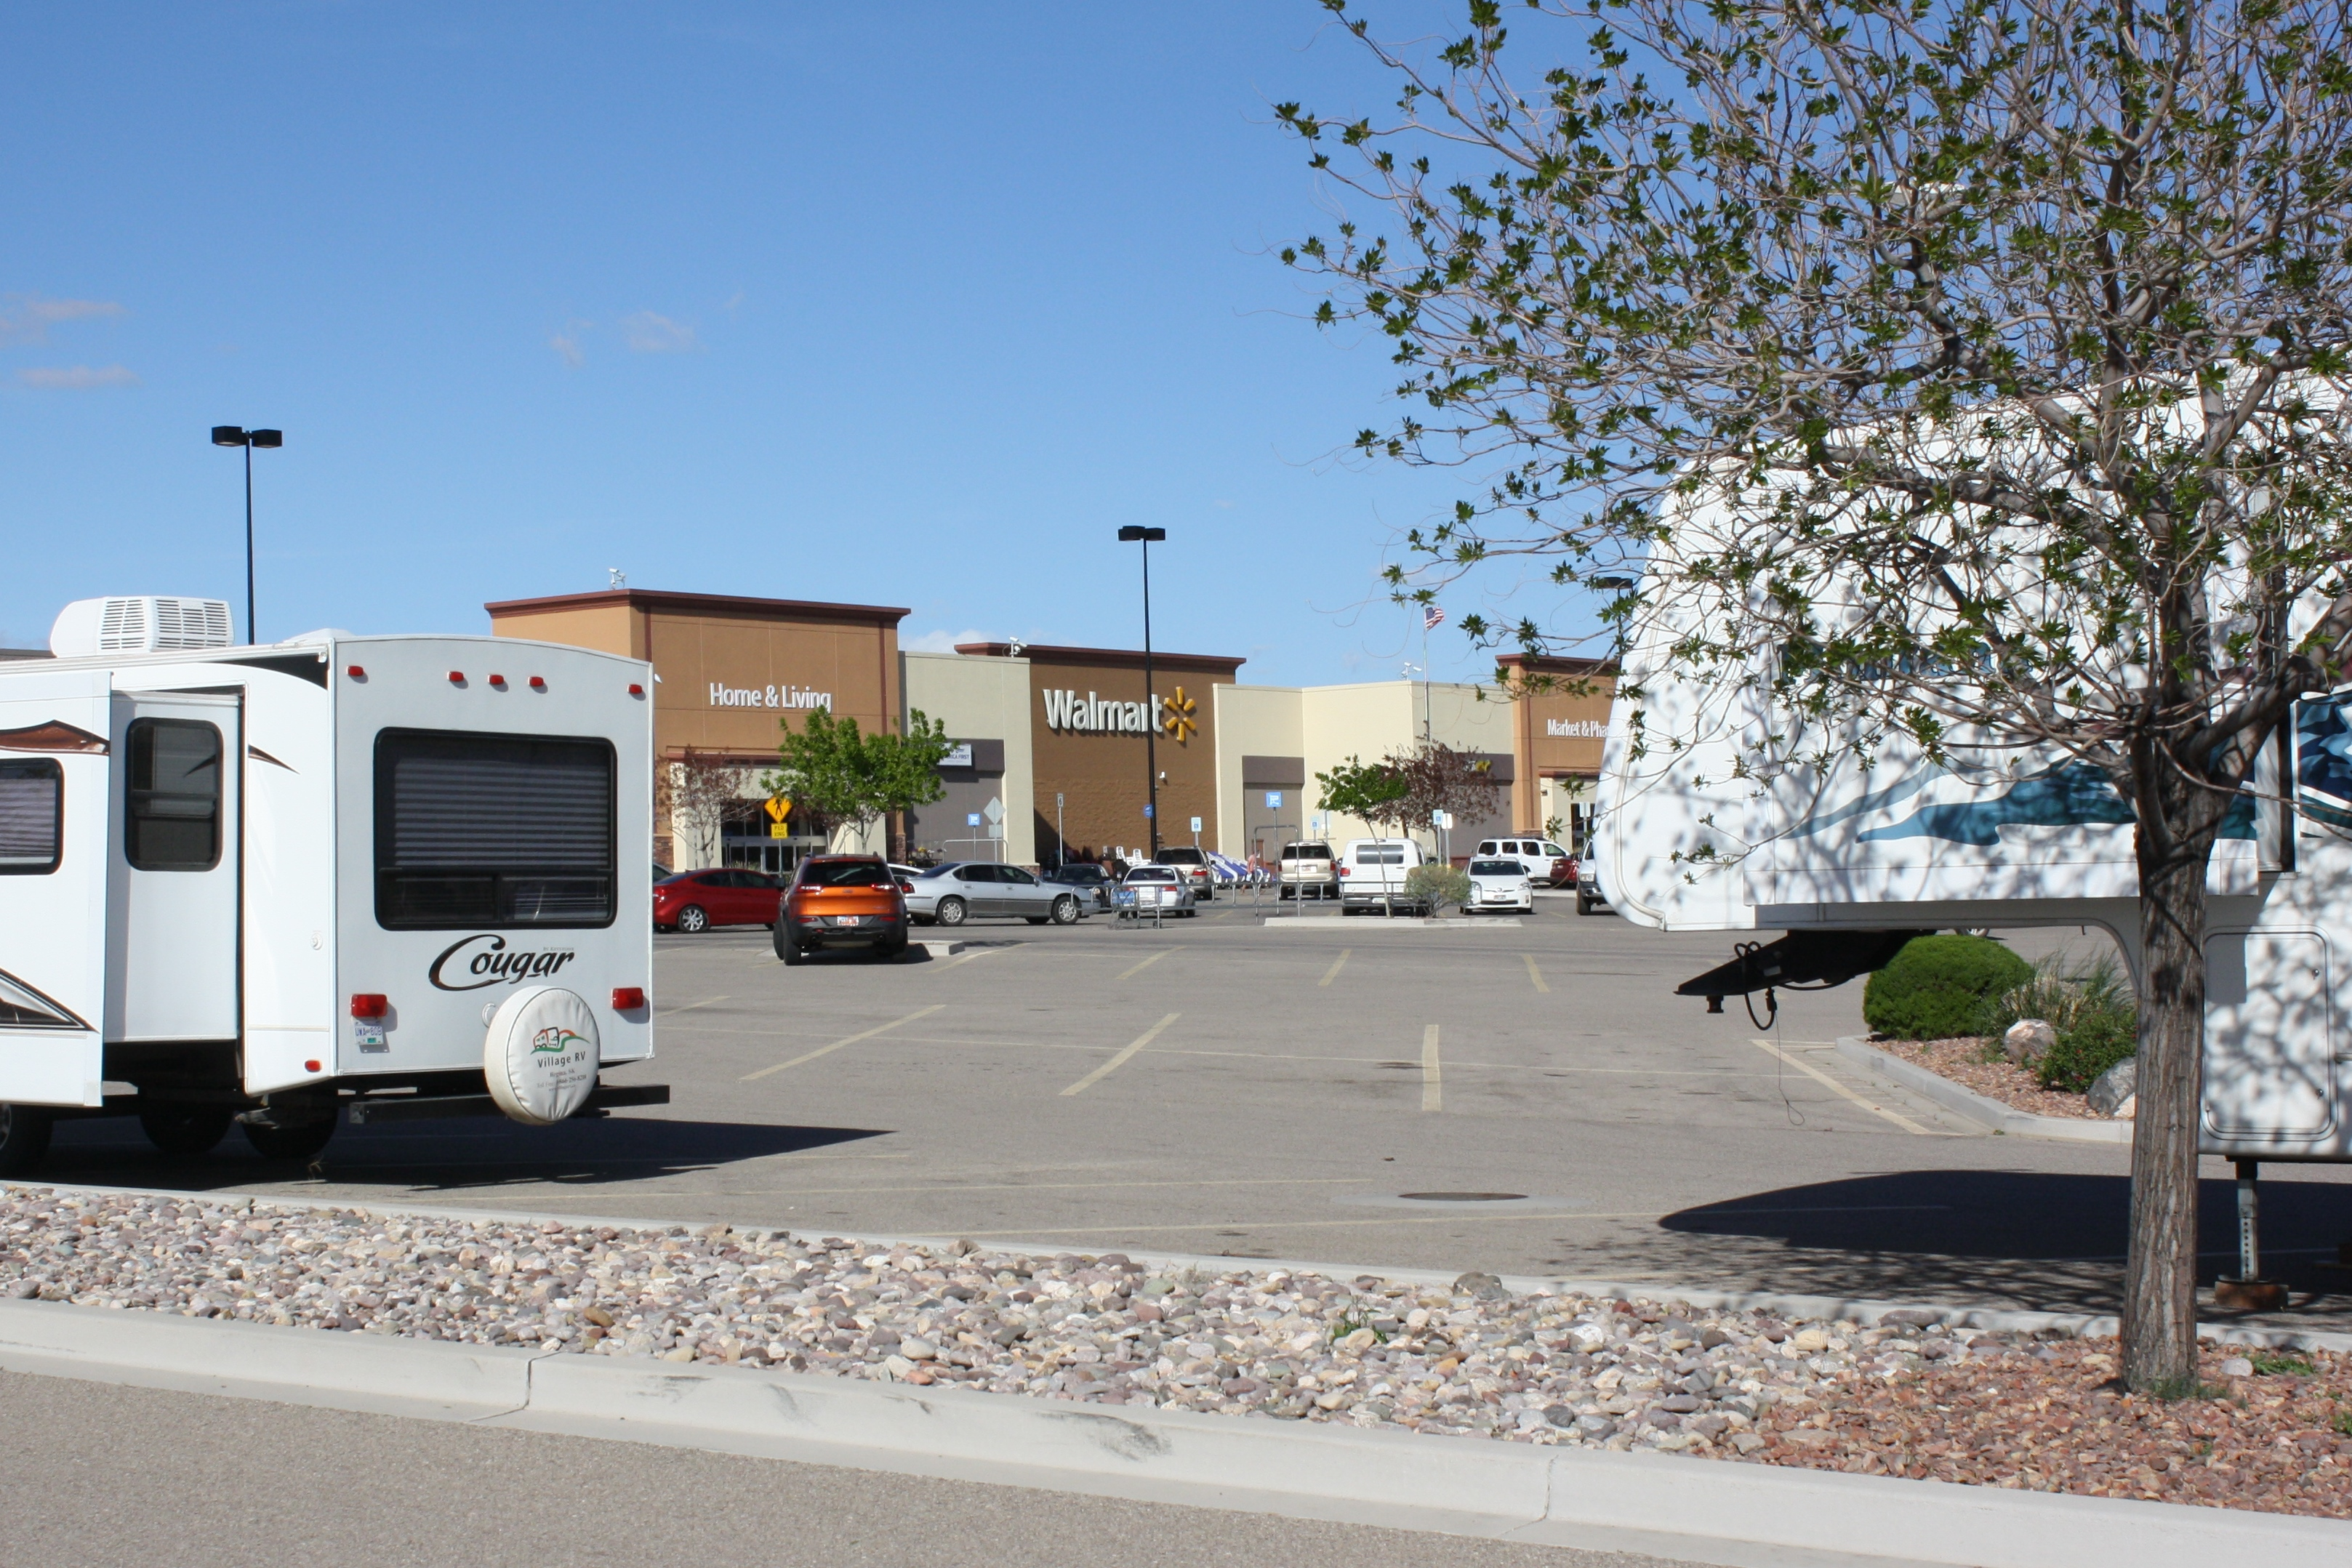 Wal Mart And Its No Frills Overnight Rv Parking St